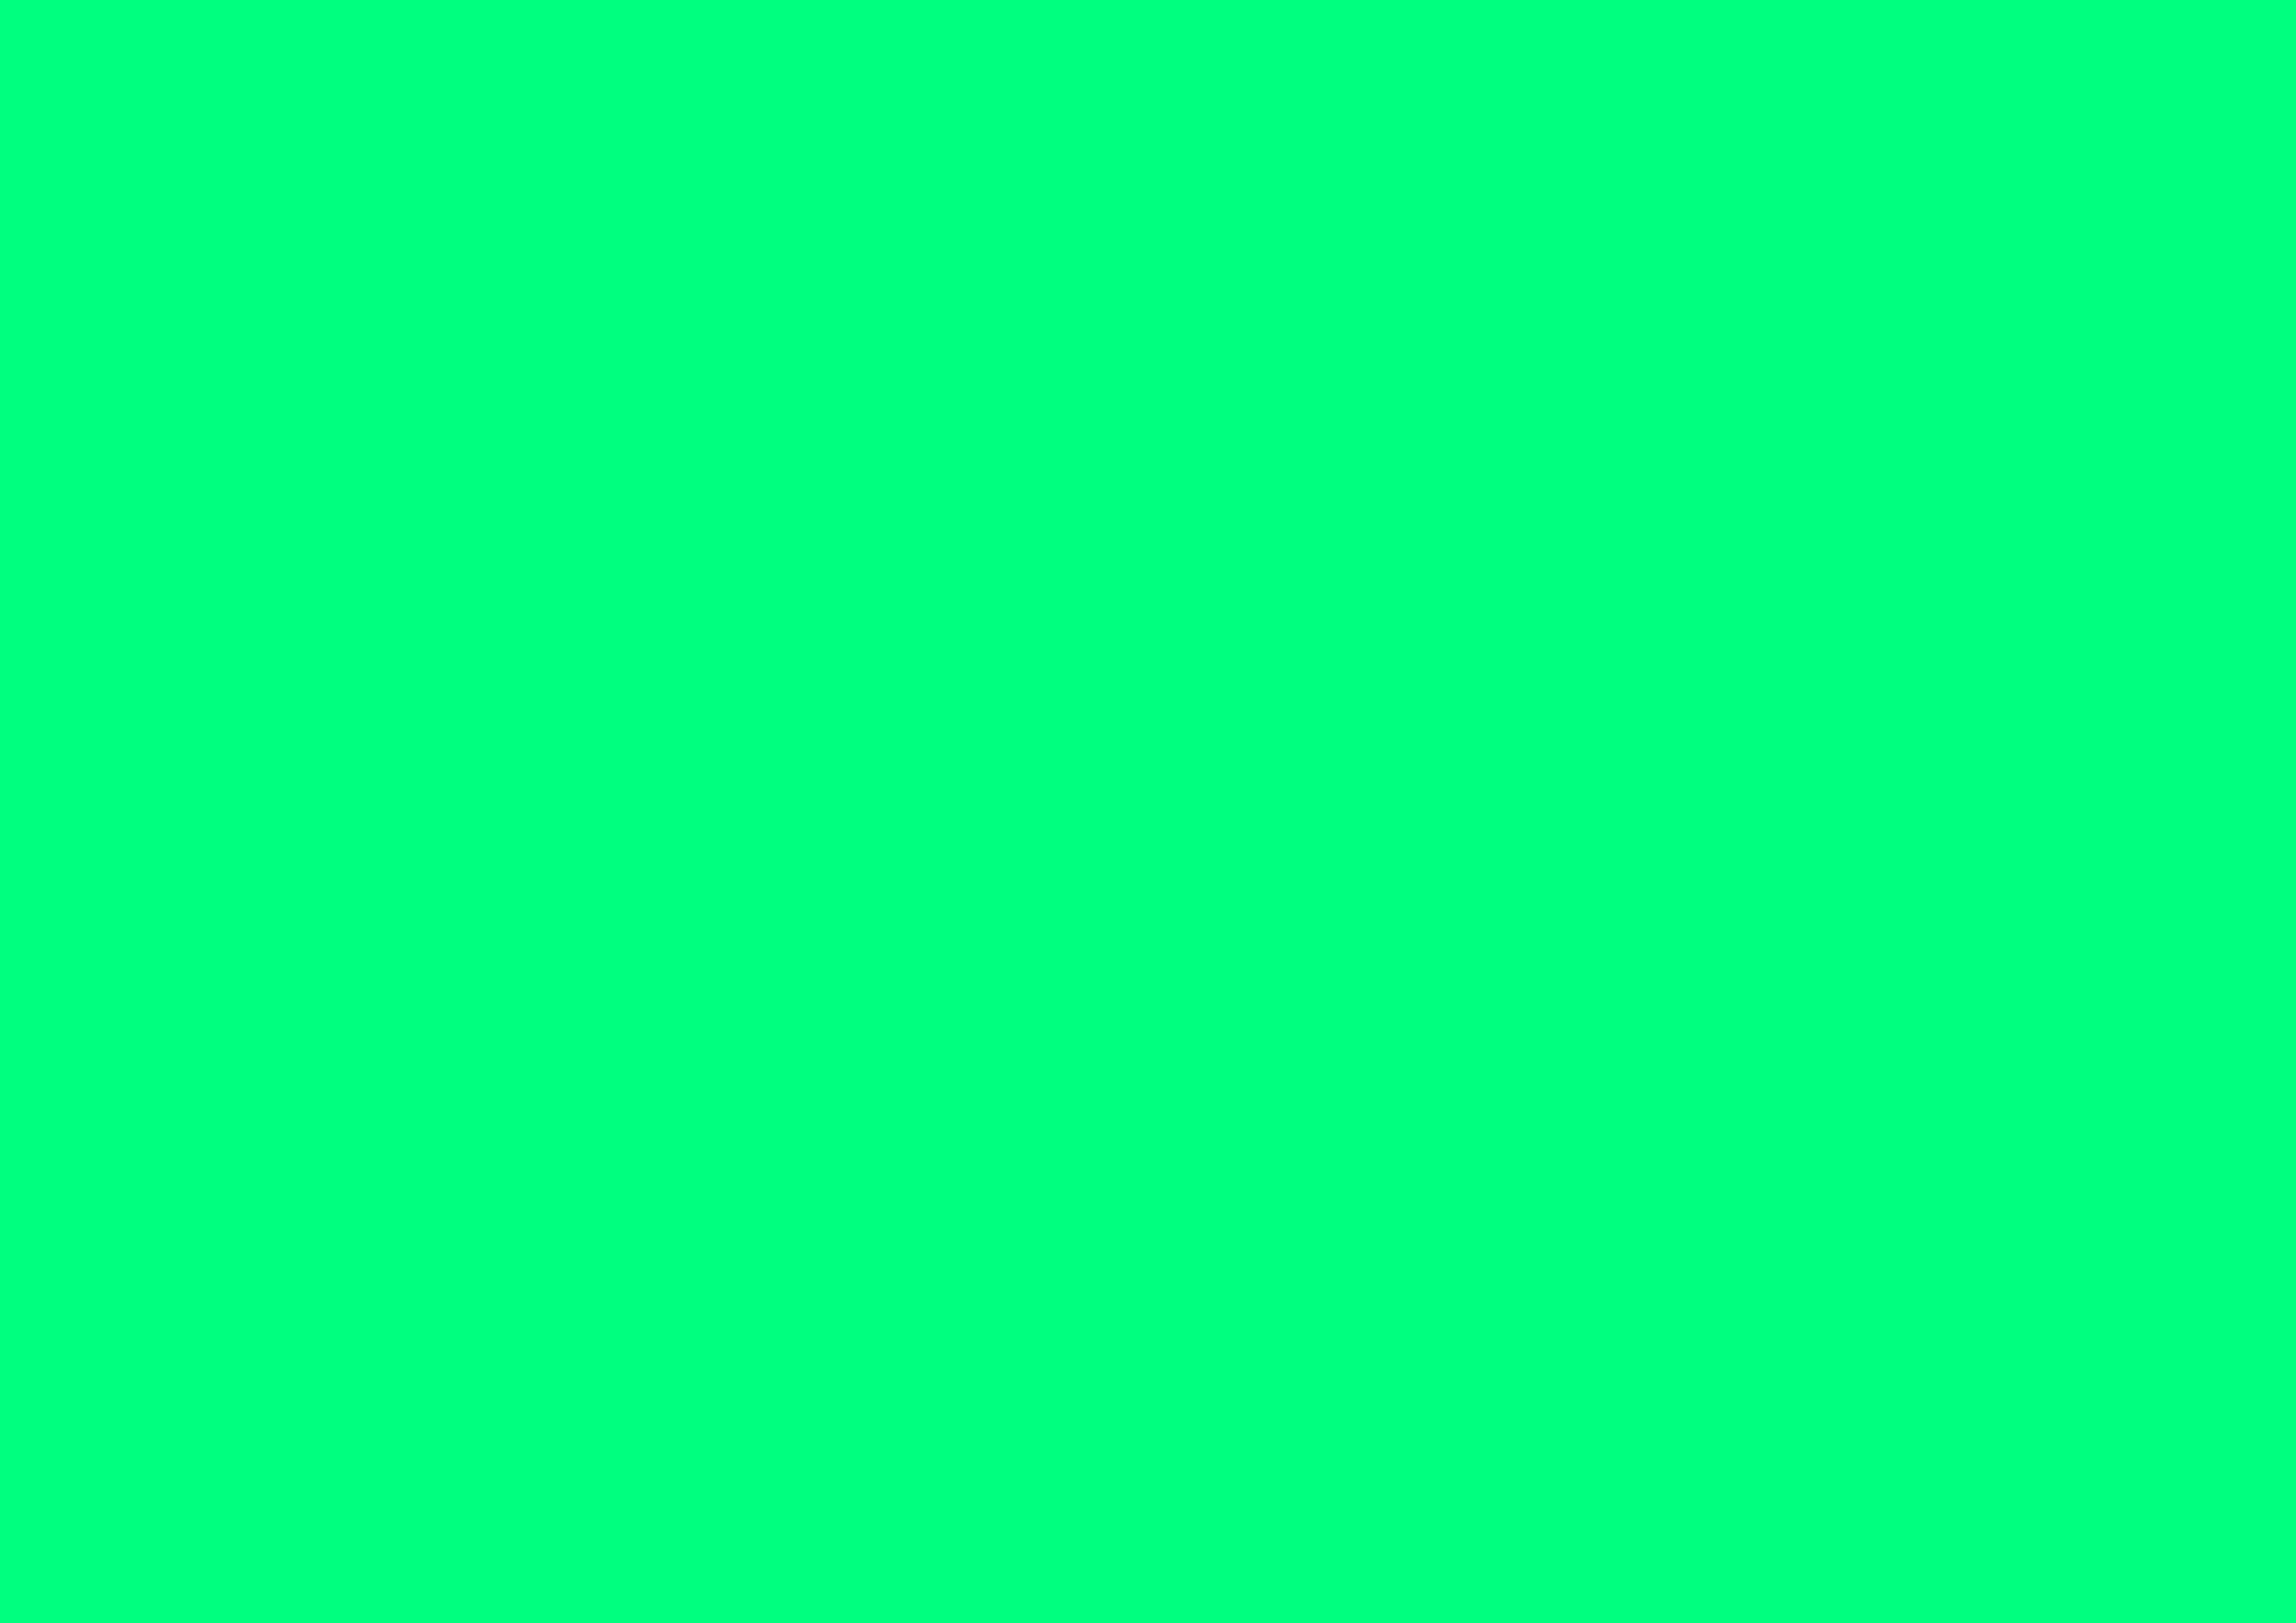 3508x2480 Guppie Green Solid Color Background